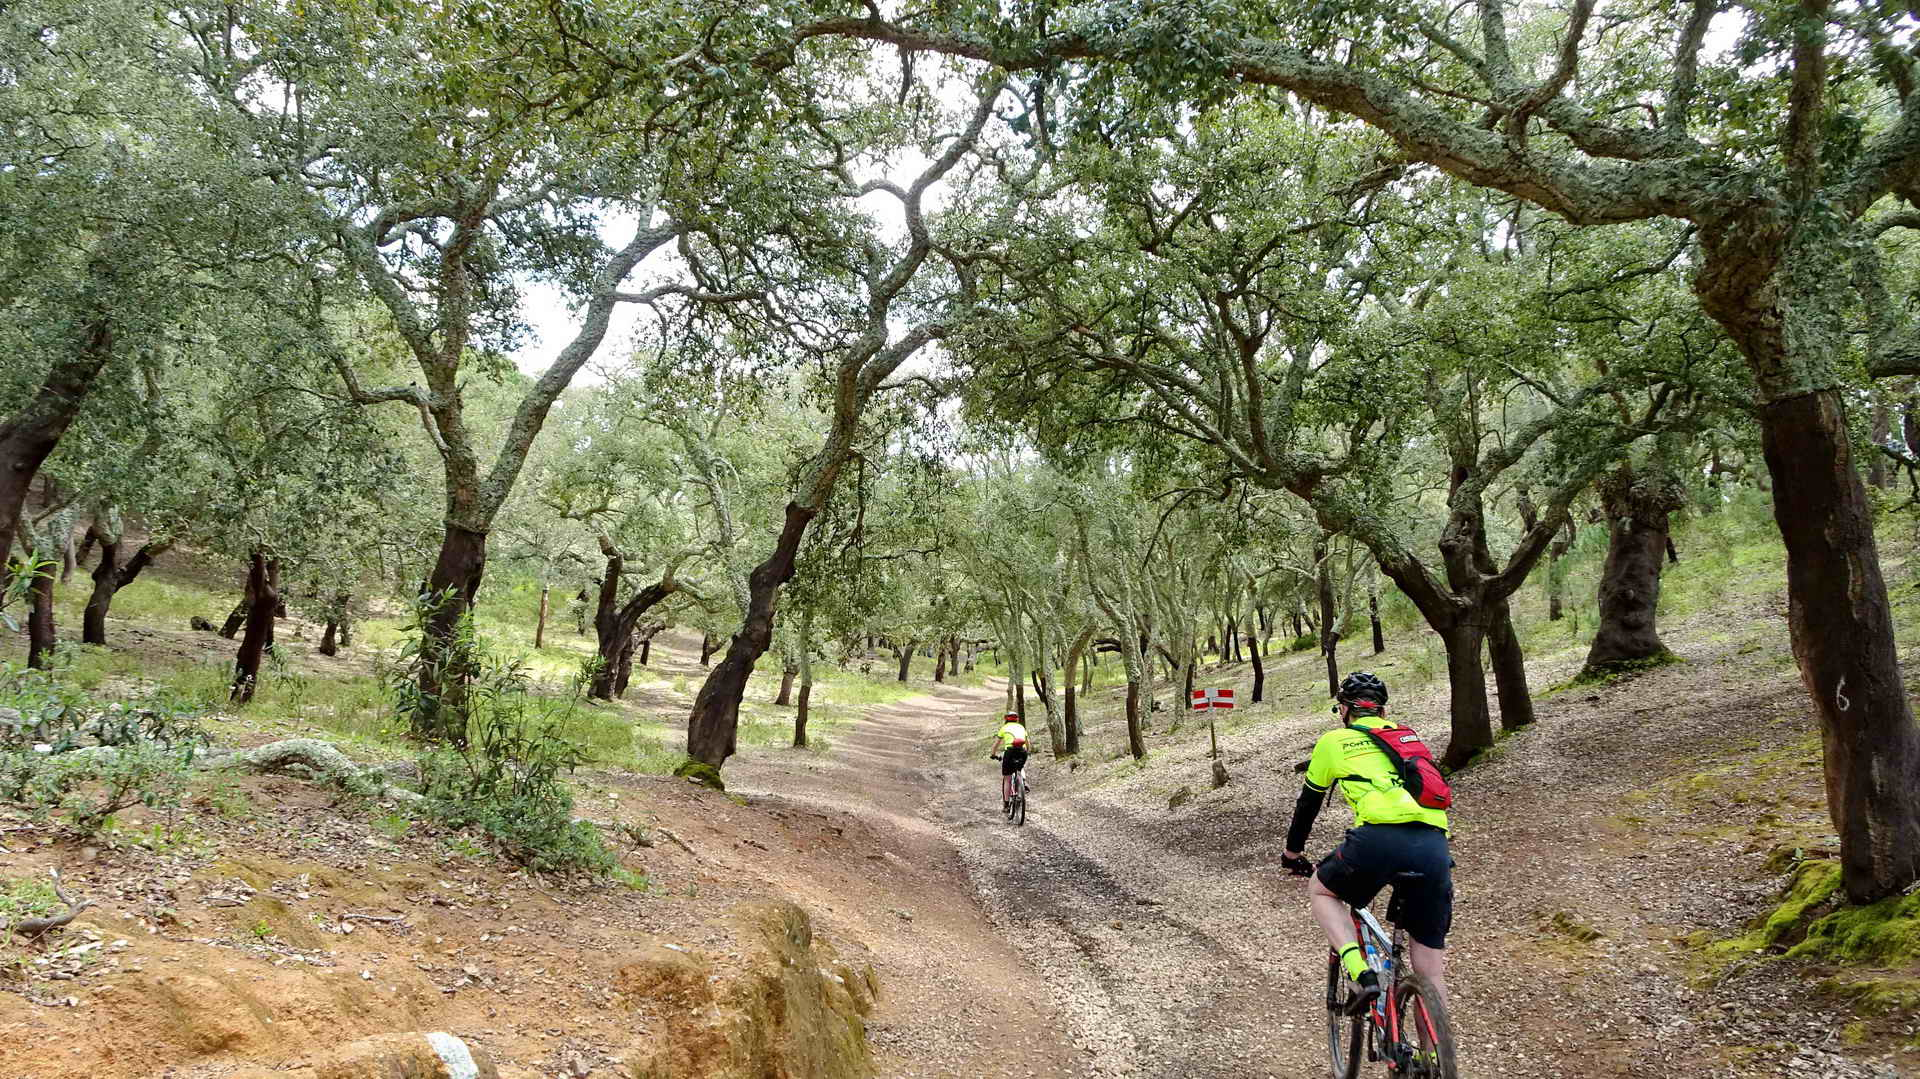 Self Guided Bike Tour in Portugal - Cork Trees and the Algarve Wild Coast